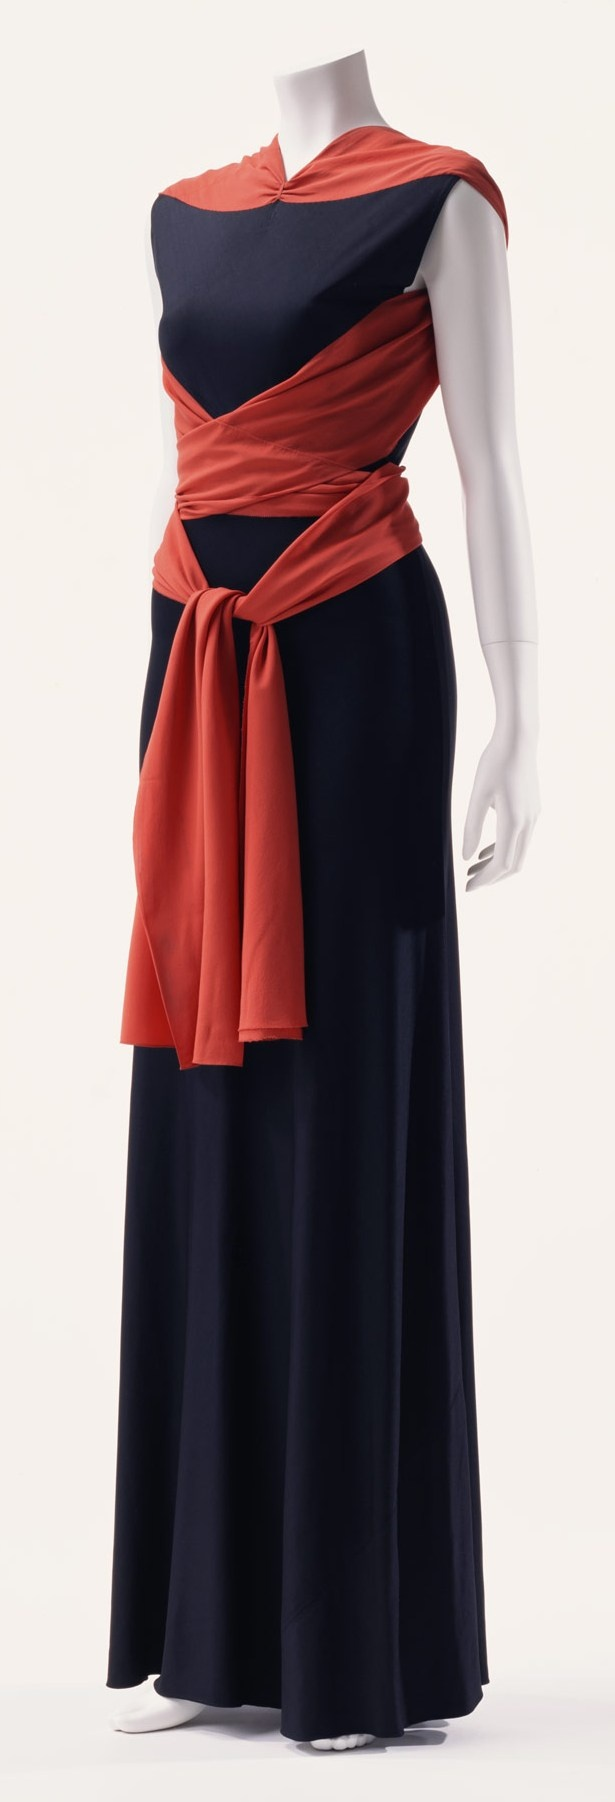 """Evening Dress, Madeleine Vionnet: ca. 1933, bias-cut rayon jersey, silk crepe sash. """"The dress was made of rayon jersey, treated in bias cut to fit around the body. The surrounding sash has the effect of highlighting the sleek body. The dress is from Madeleine Vionnet's personal wardrobe. The bias cut became a useful technique in the 1930s, when consciousness of body line was revived in fashion..."""""""